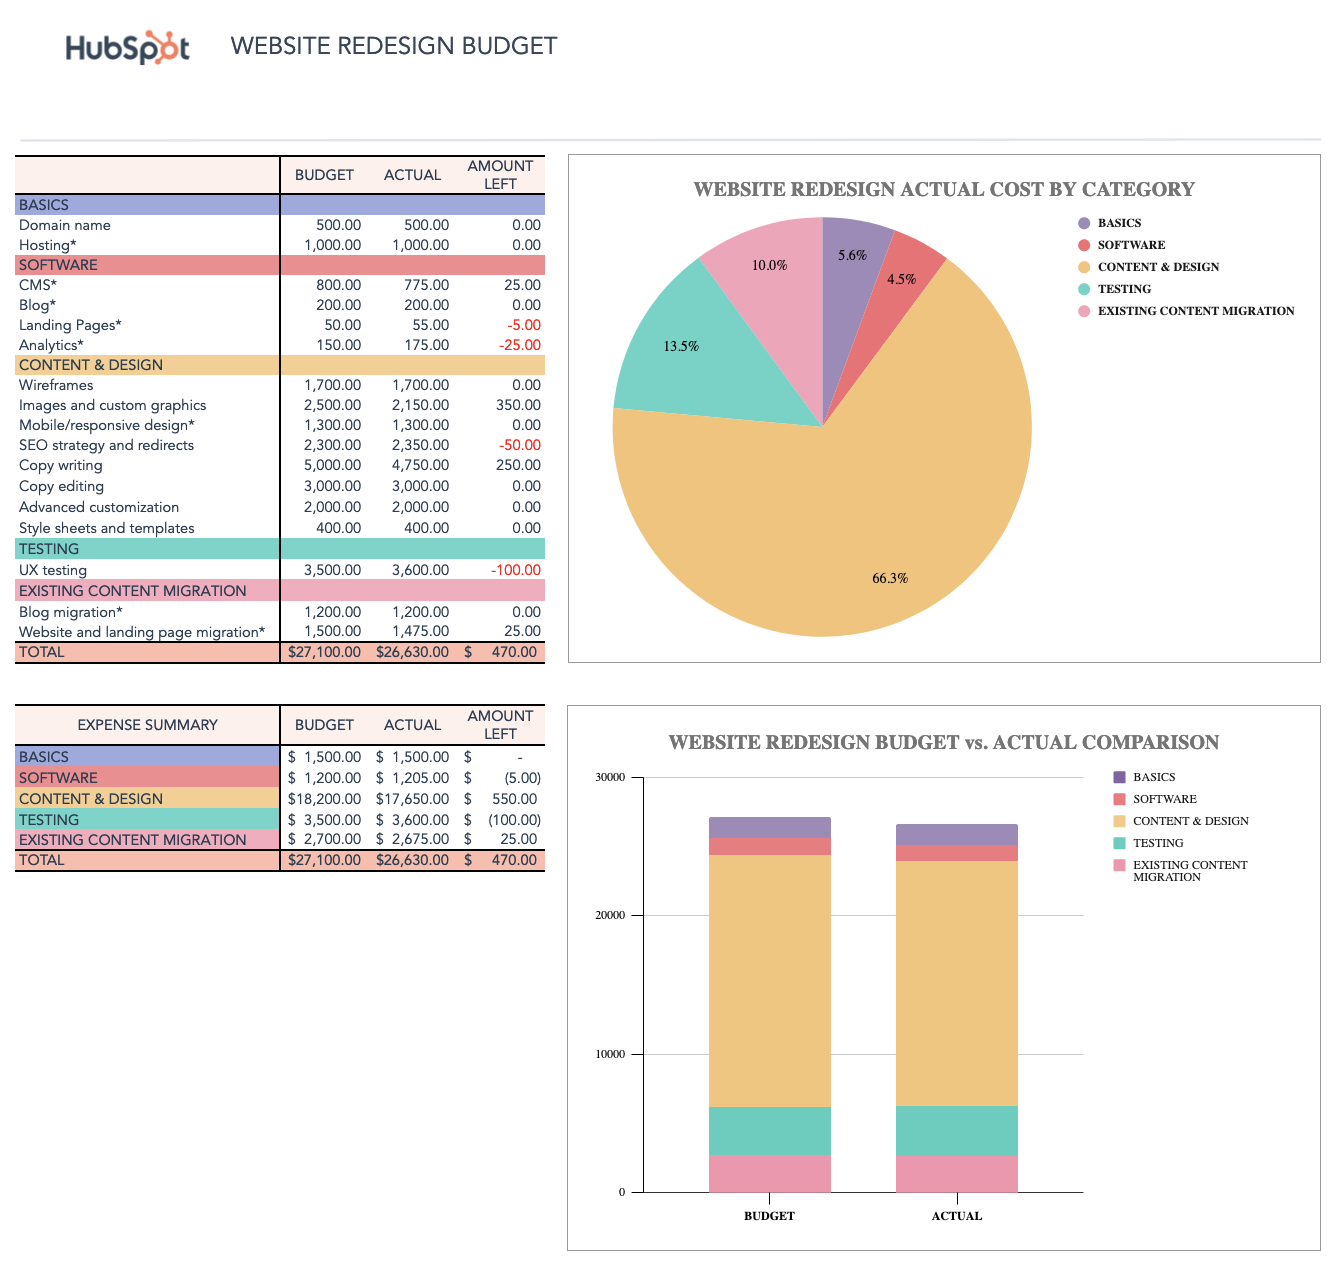 Sample business budget worksheet using a free business budget template from HubSpot